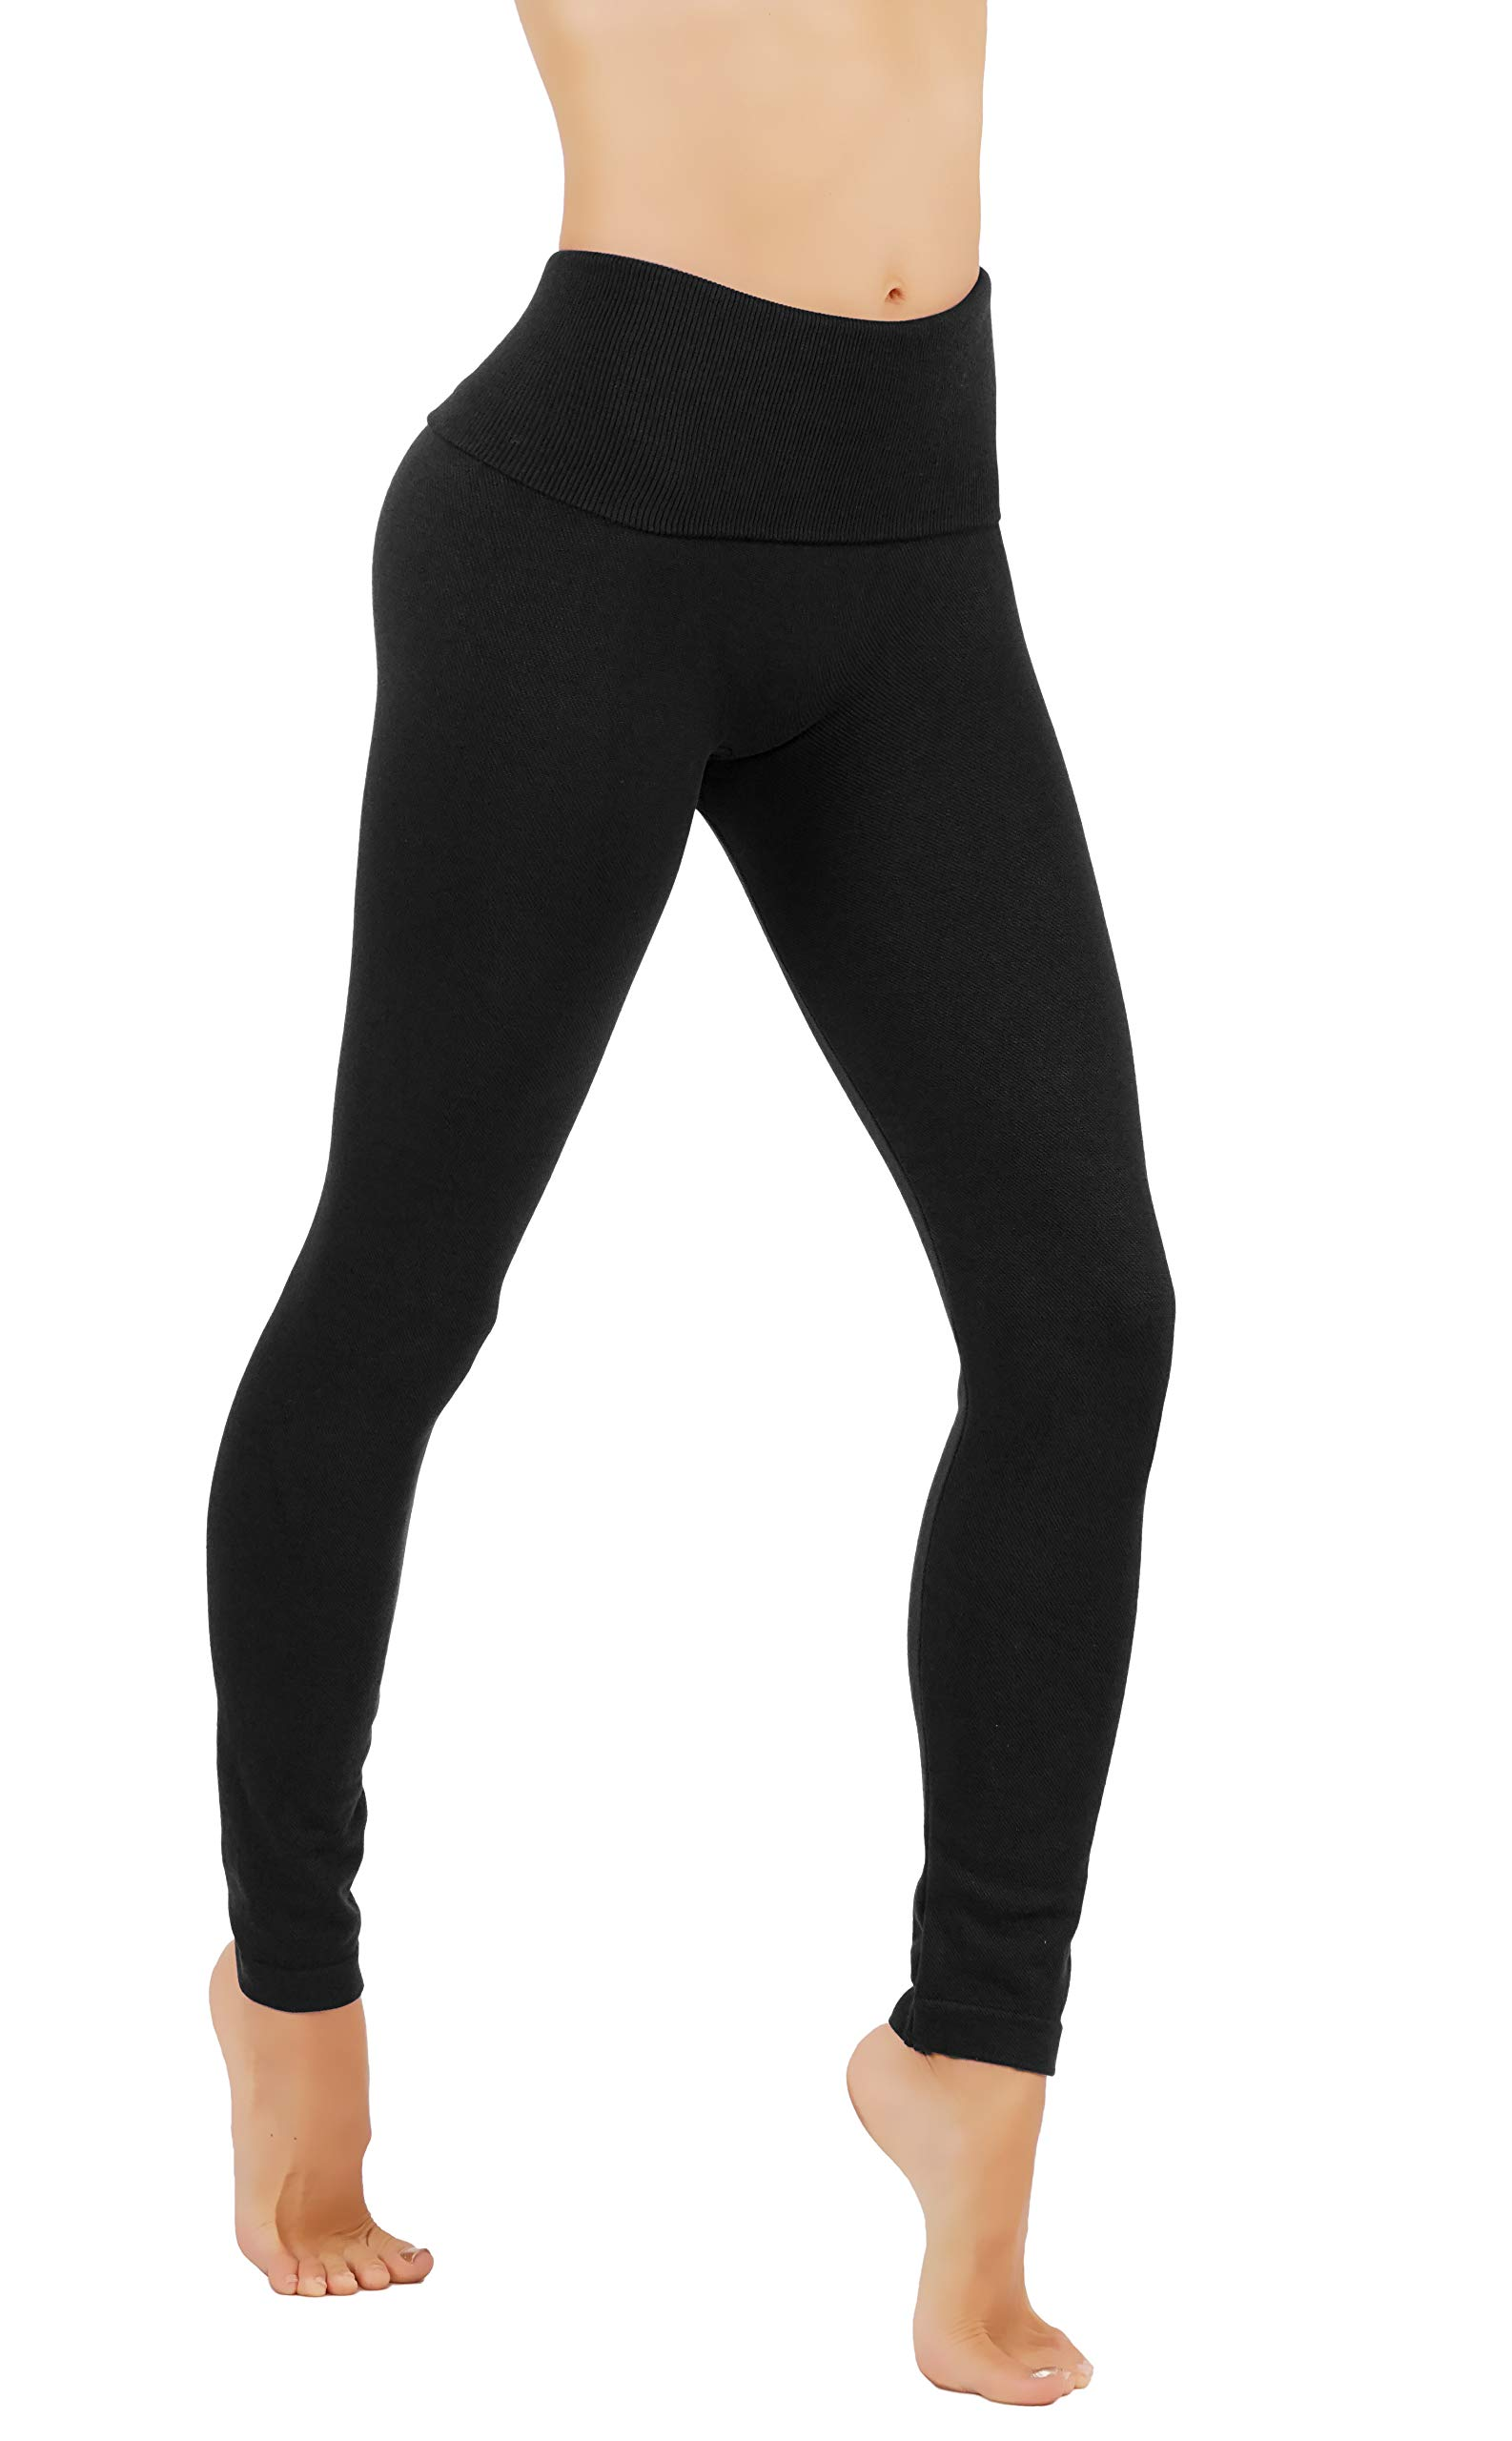 Premium Tummy Control High Waist Slimming Thick Fleece/French Terry (L/XL US Size 8-14, FD48-BLK) by Fit Division (Image #3)